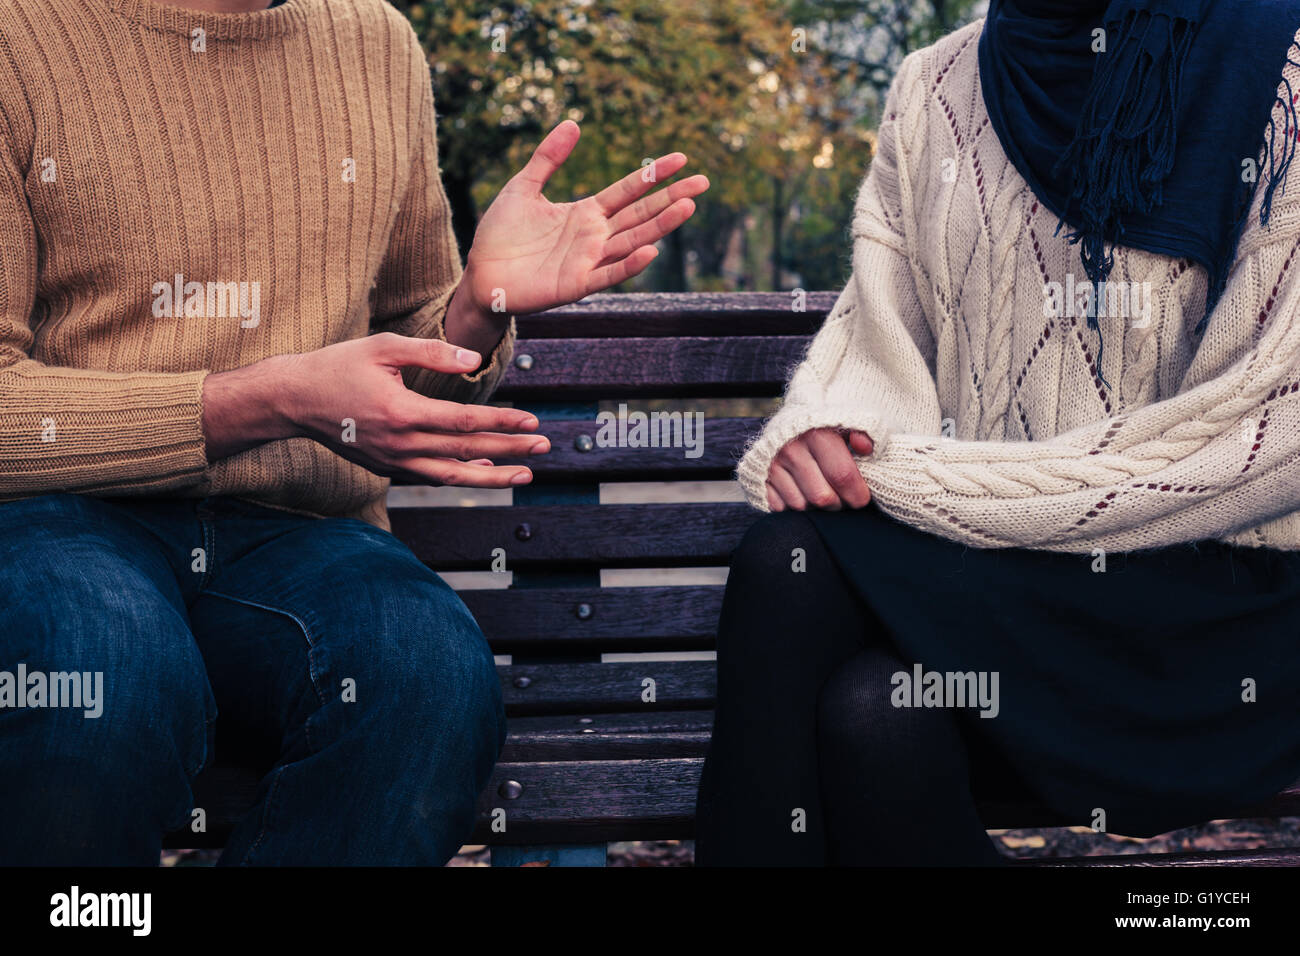 A young man and woman are sitting on a park bench and arguing - Stock Image